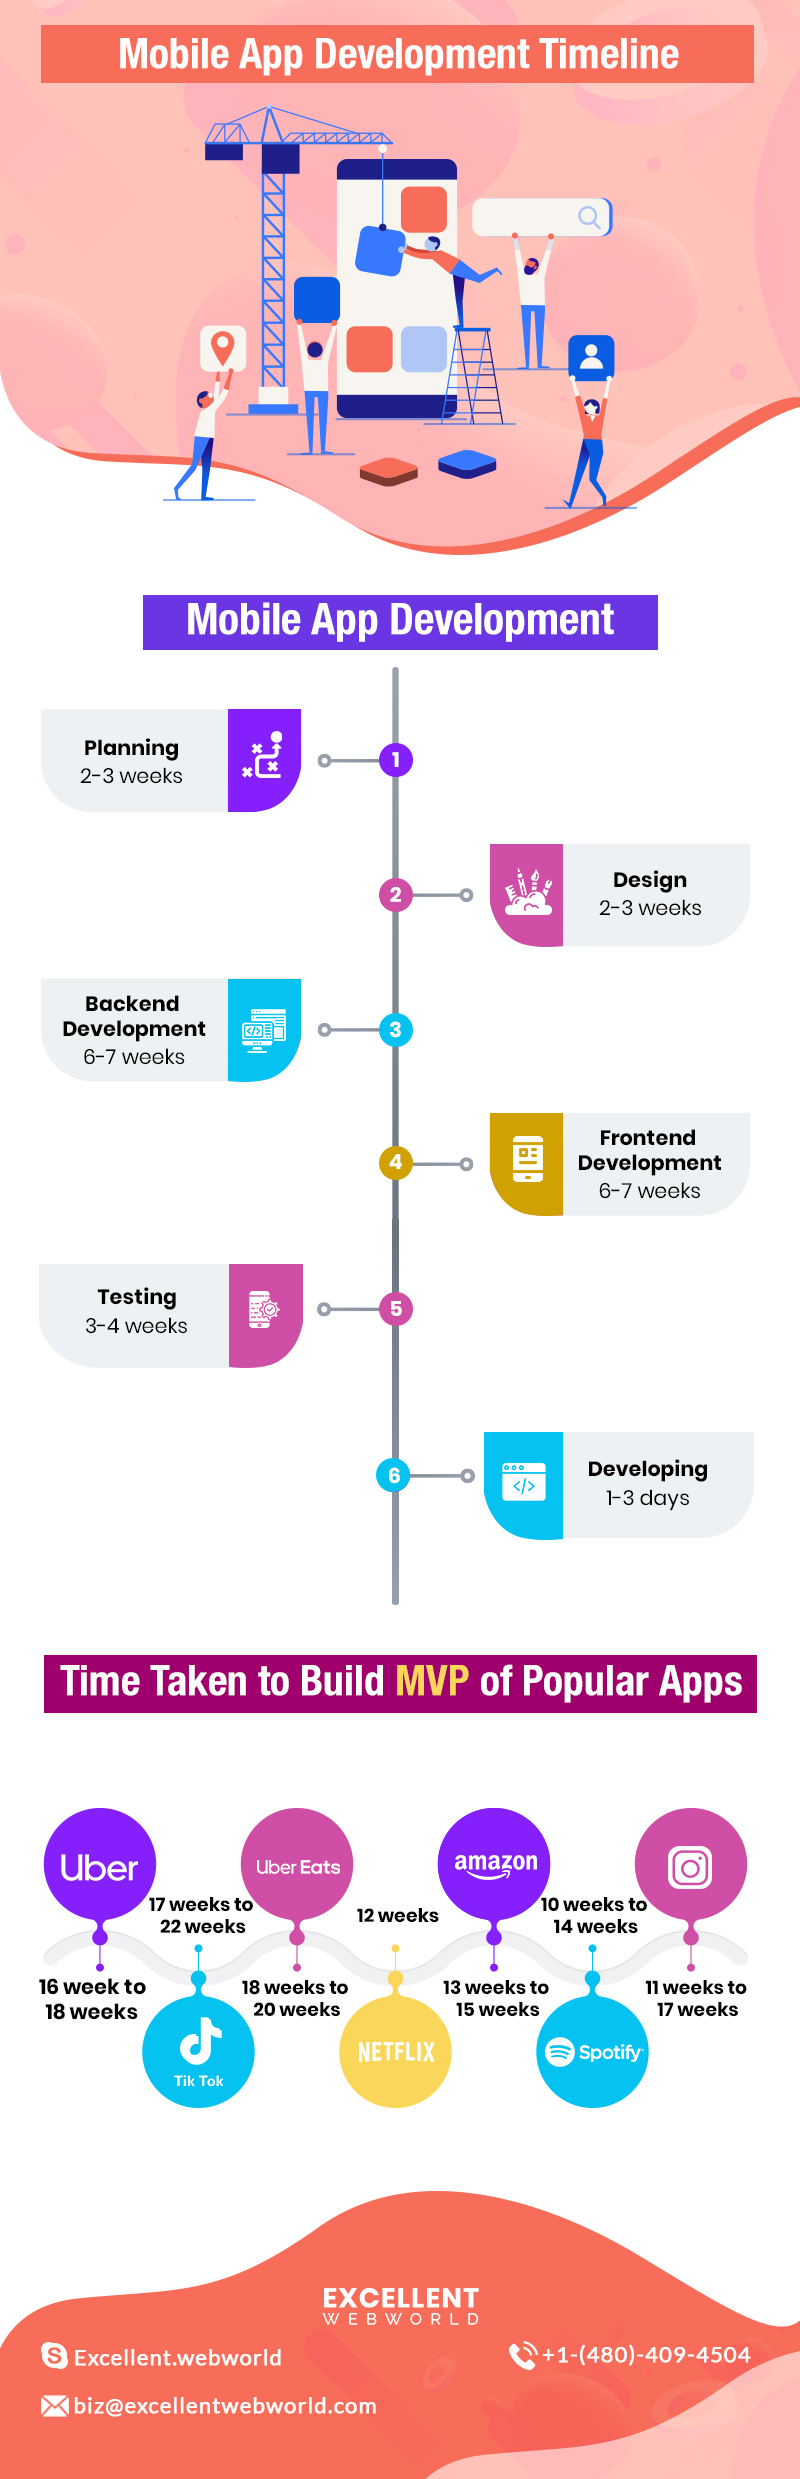 Mobile App Development Timeline Infographic